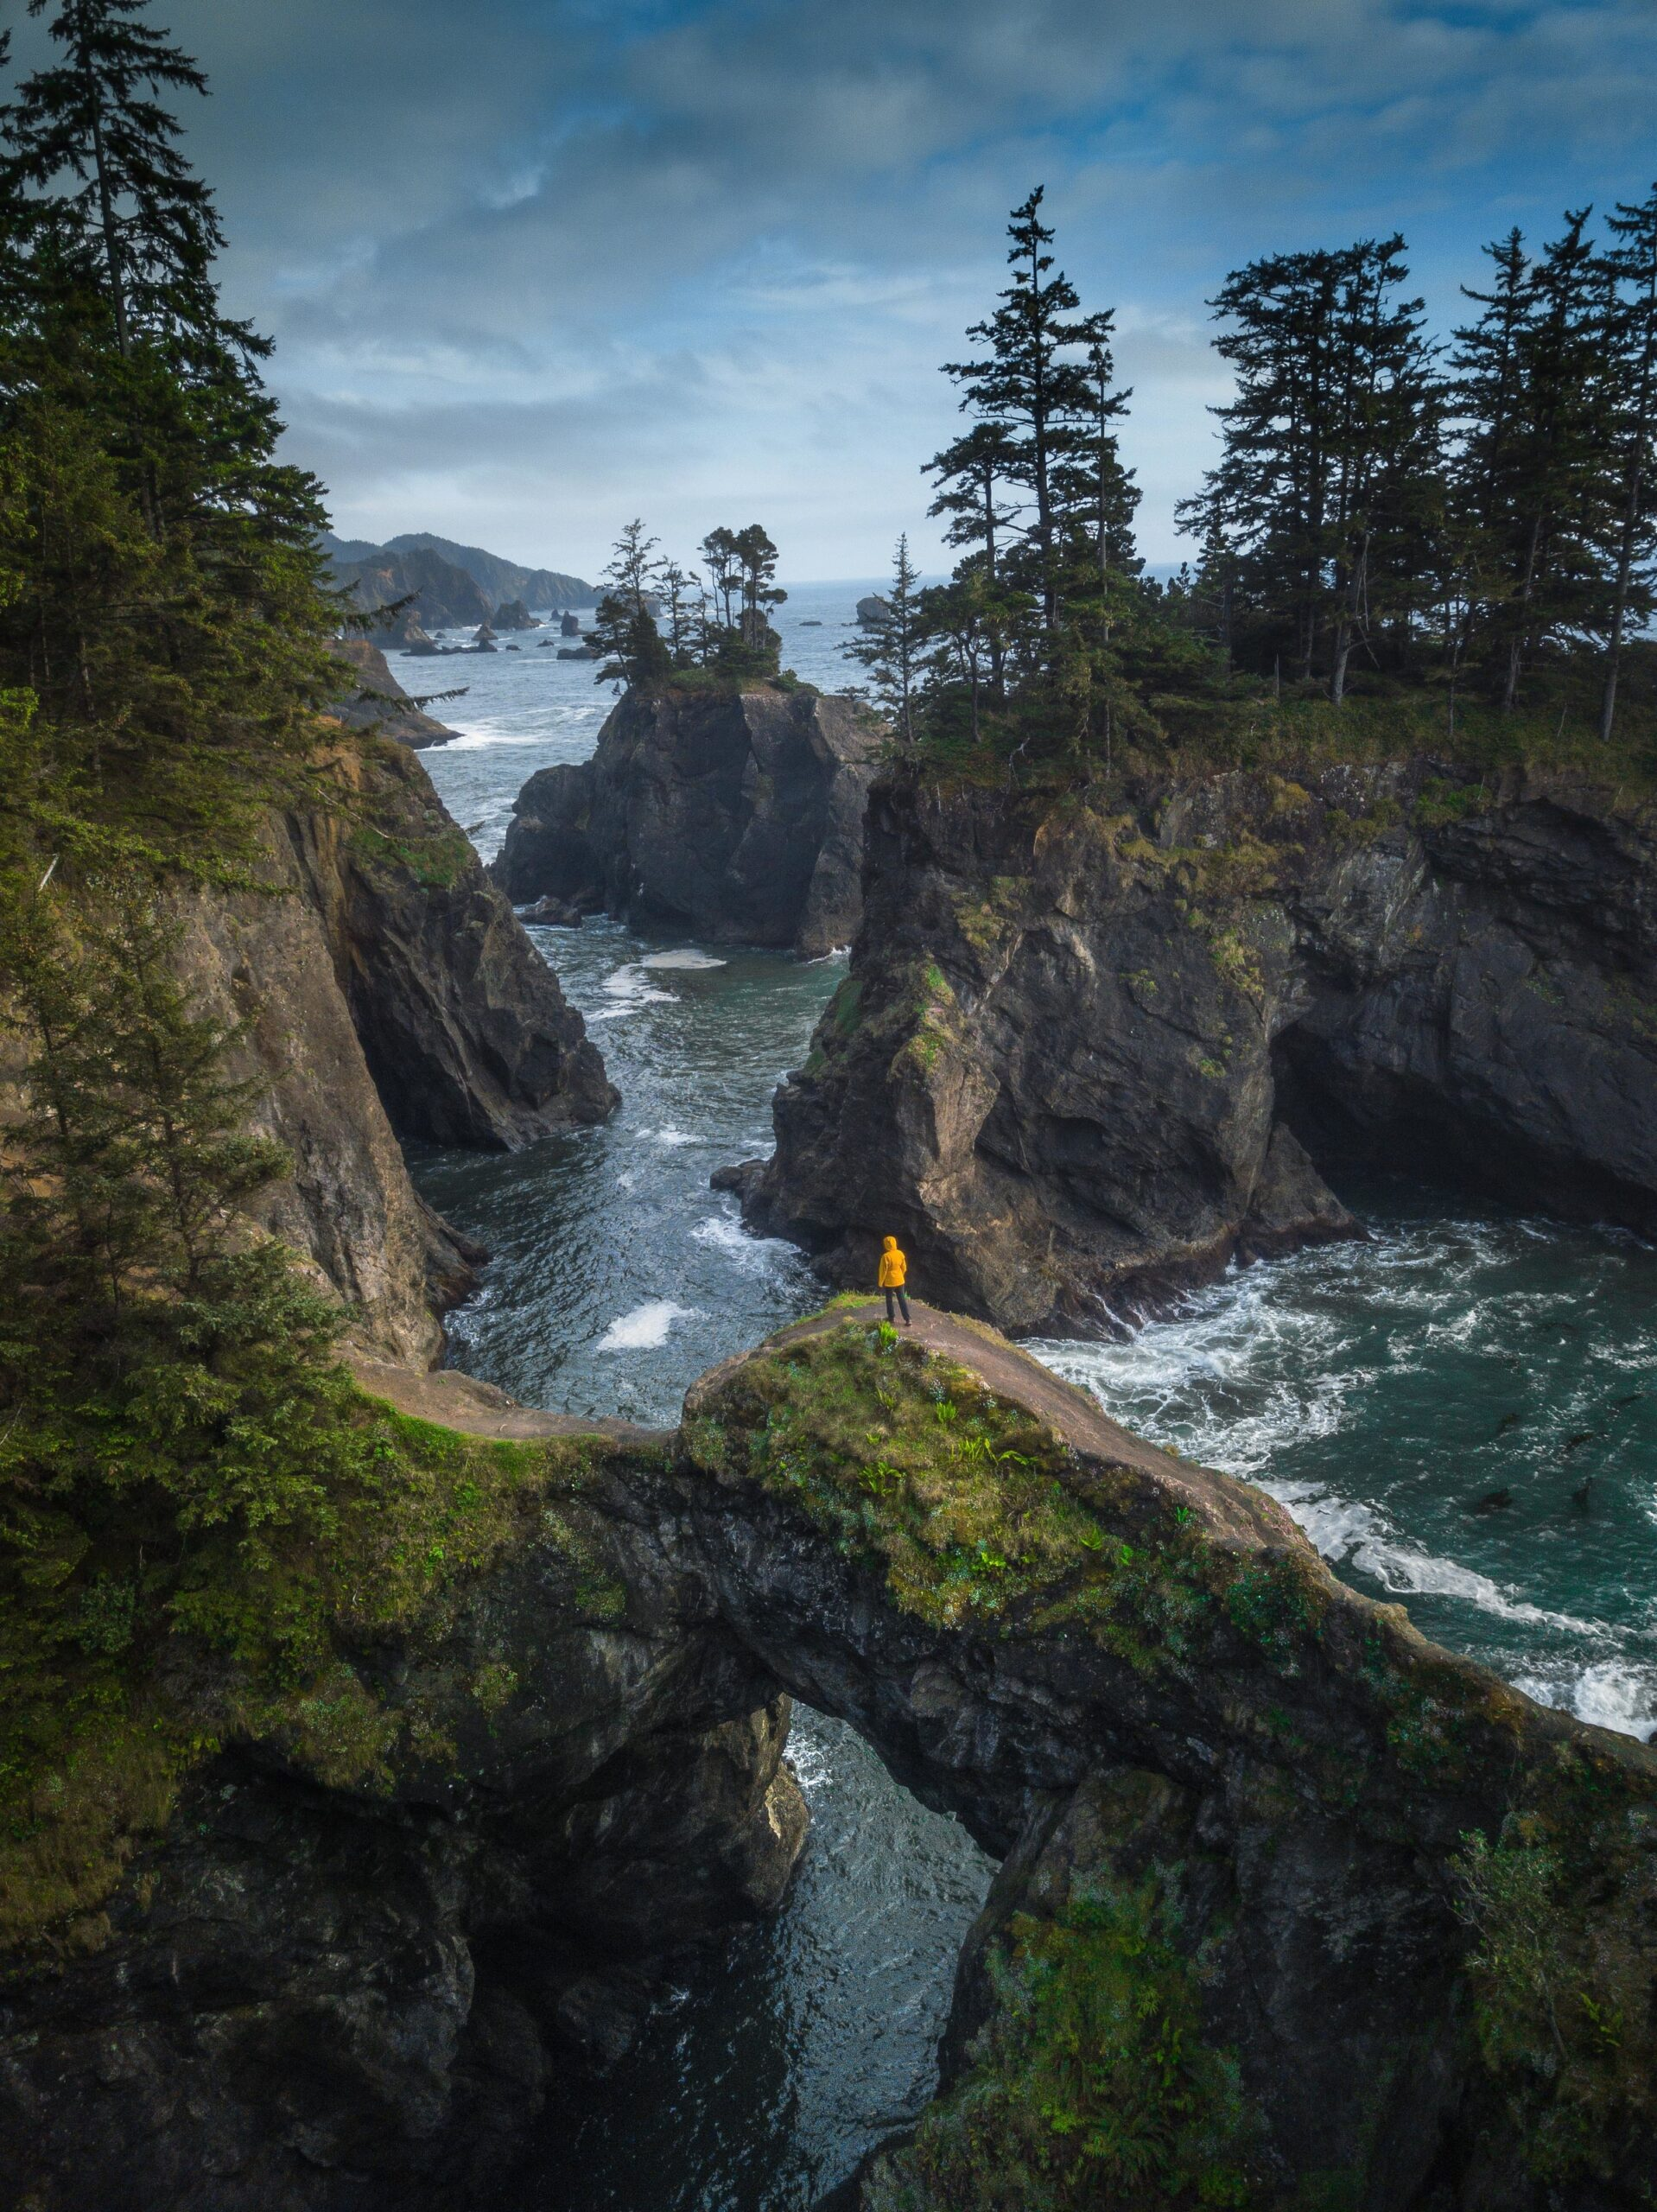 a person hiking in a yellow jacket on a rock bridge on the Oregon Coast